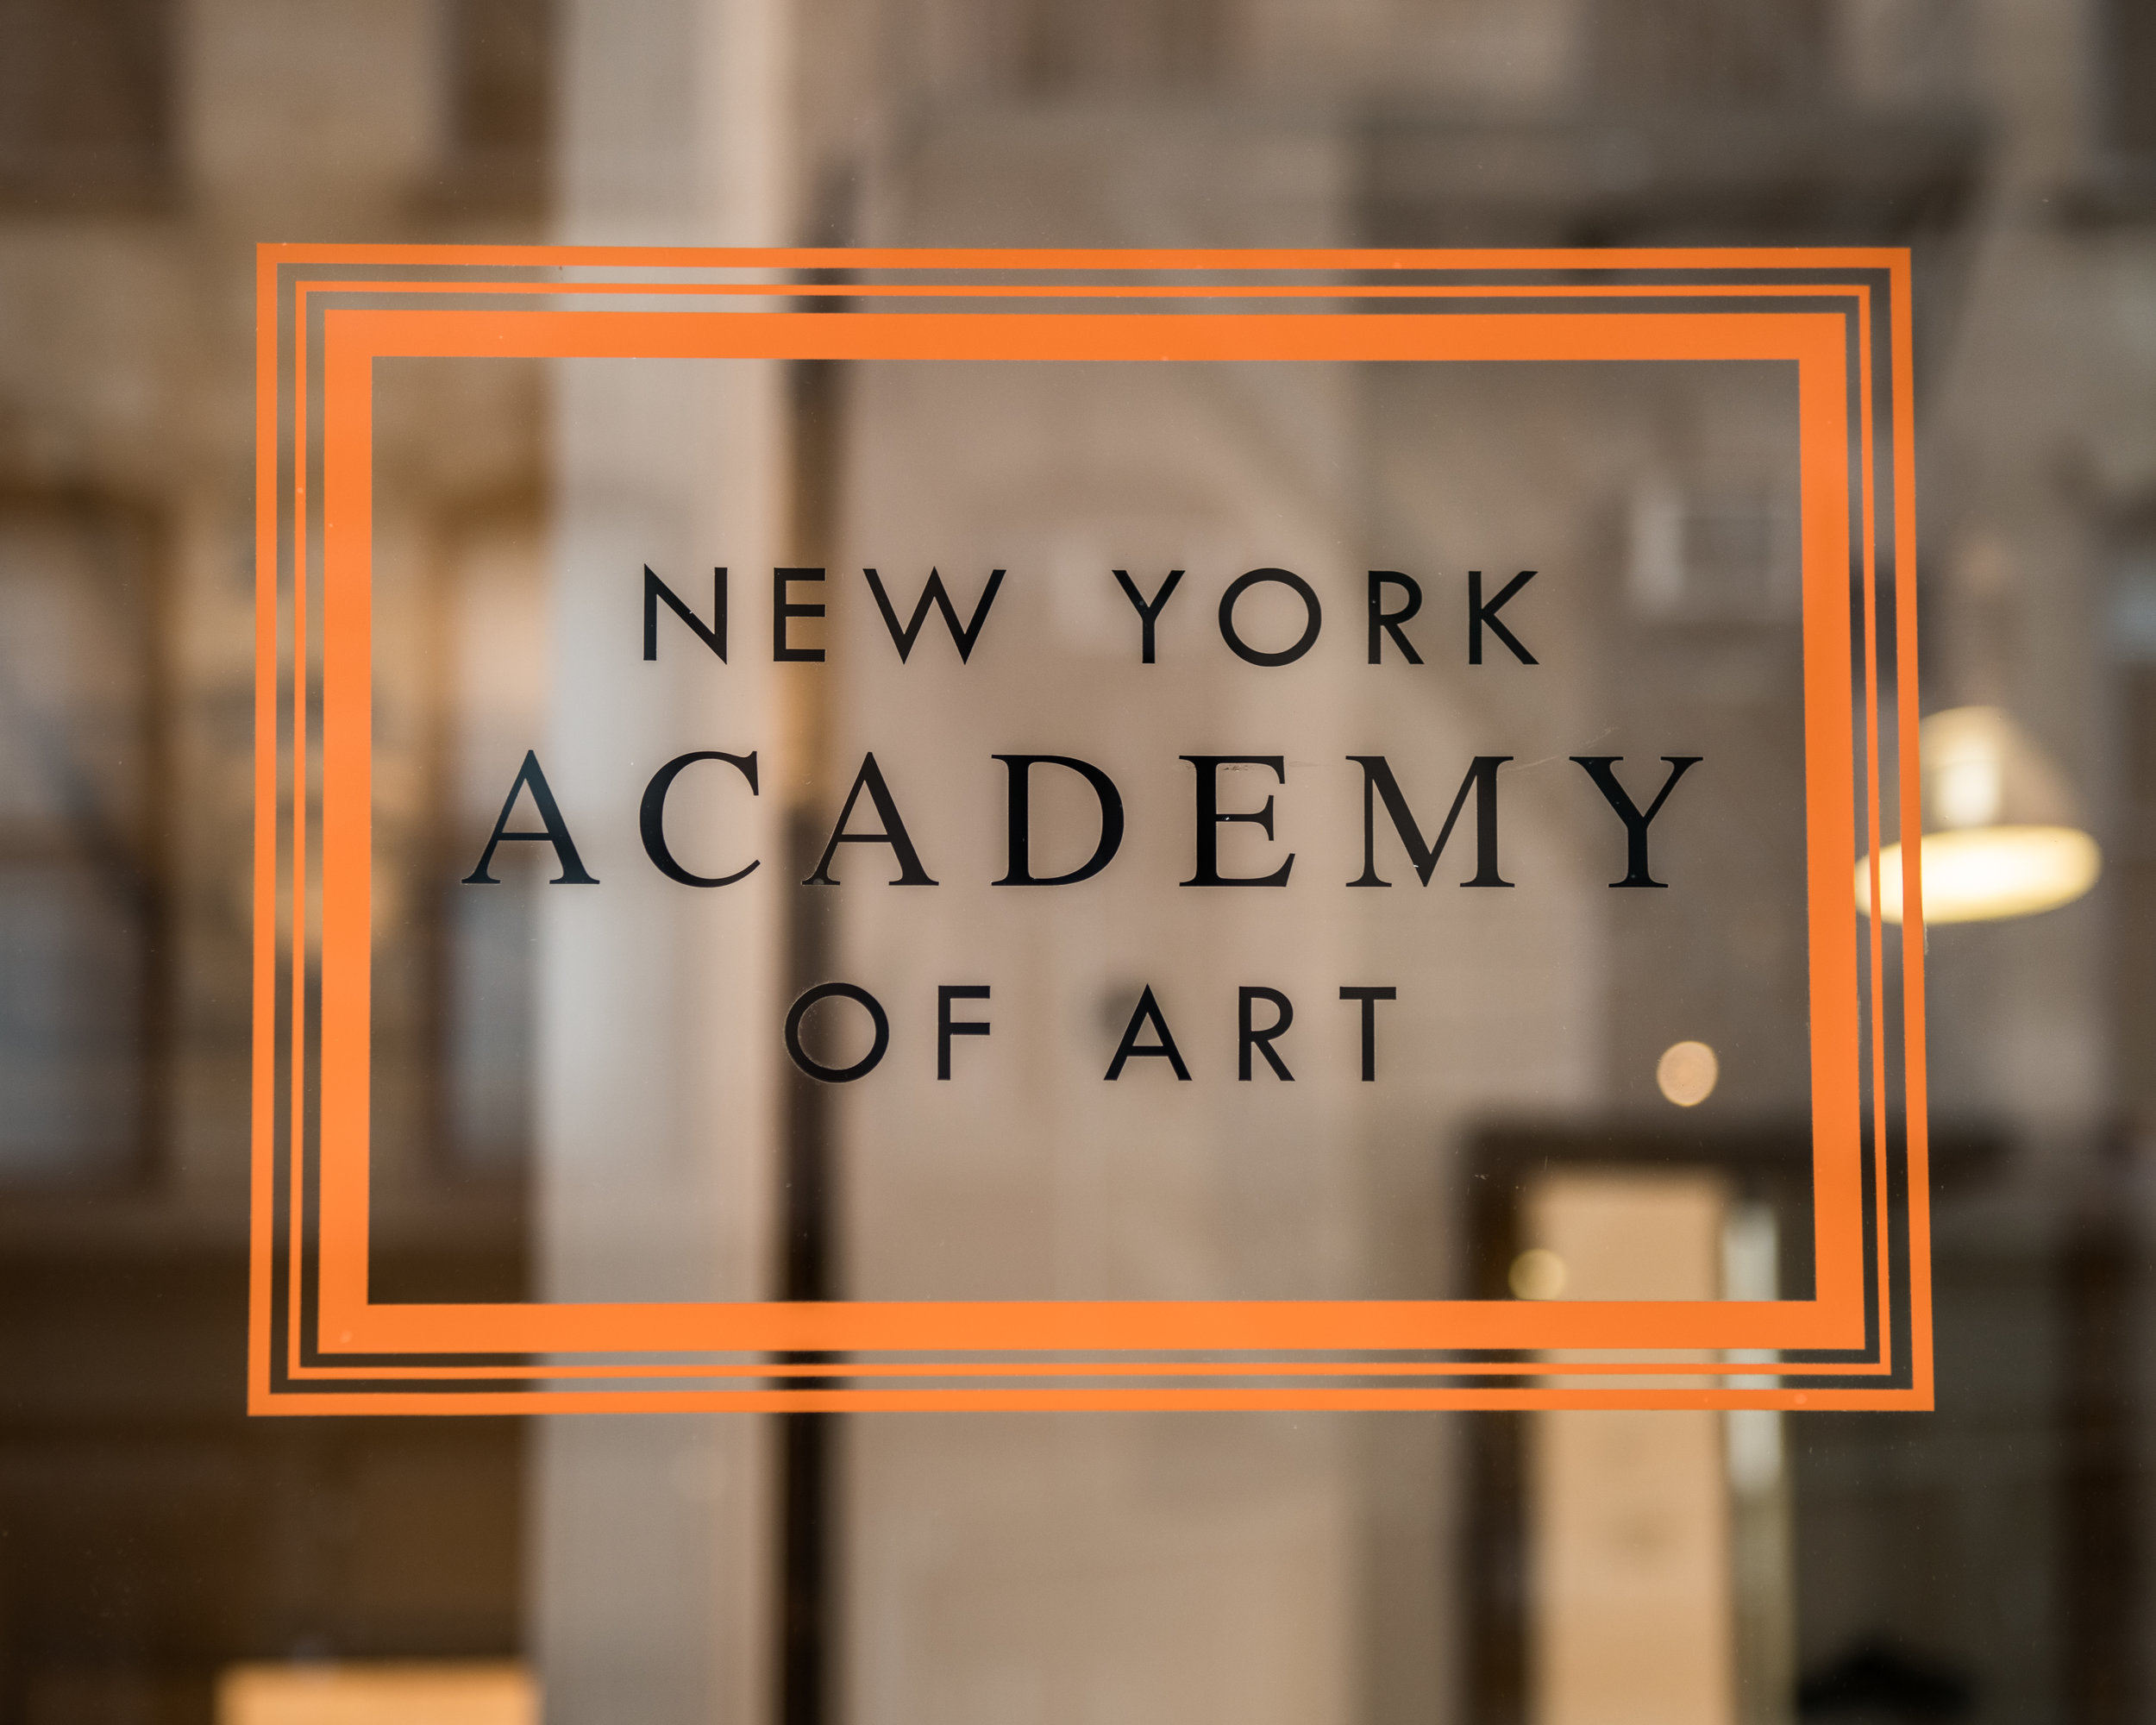 Exterior view of the New York Academy of Art at 111 Franklin street in New York, NY on July 12, 2019.